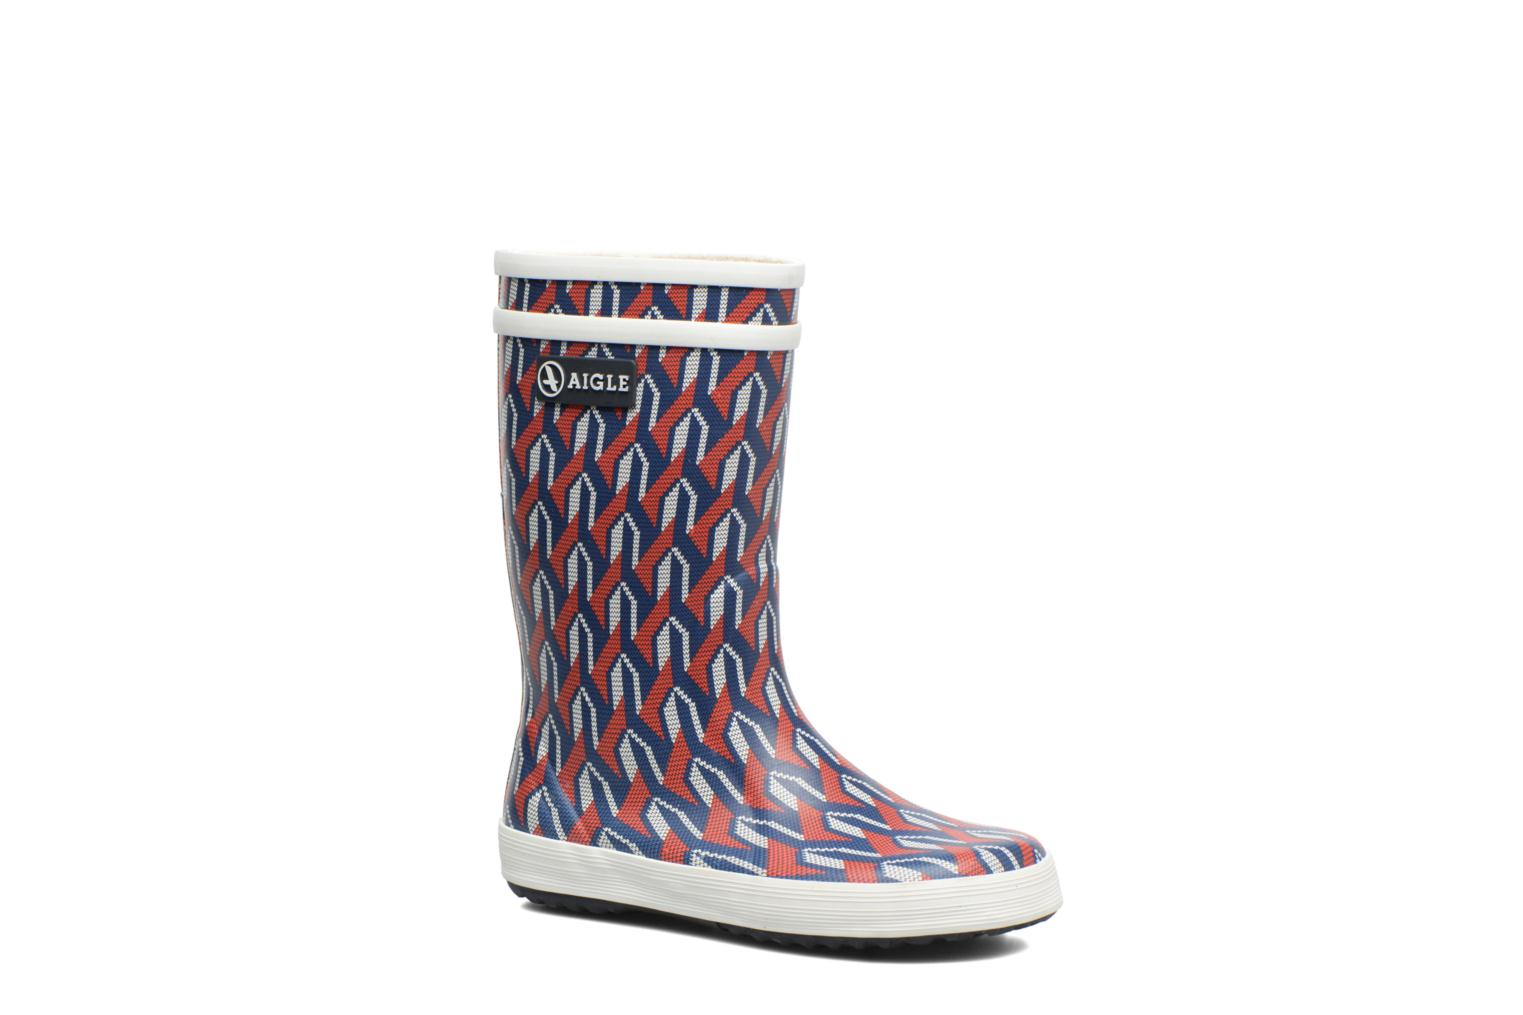 Lolly Pop AIGLE x SARENZA Print Mountain